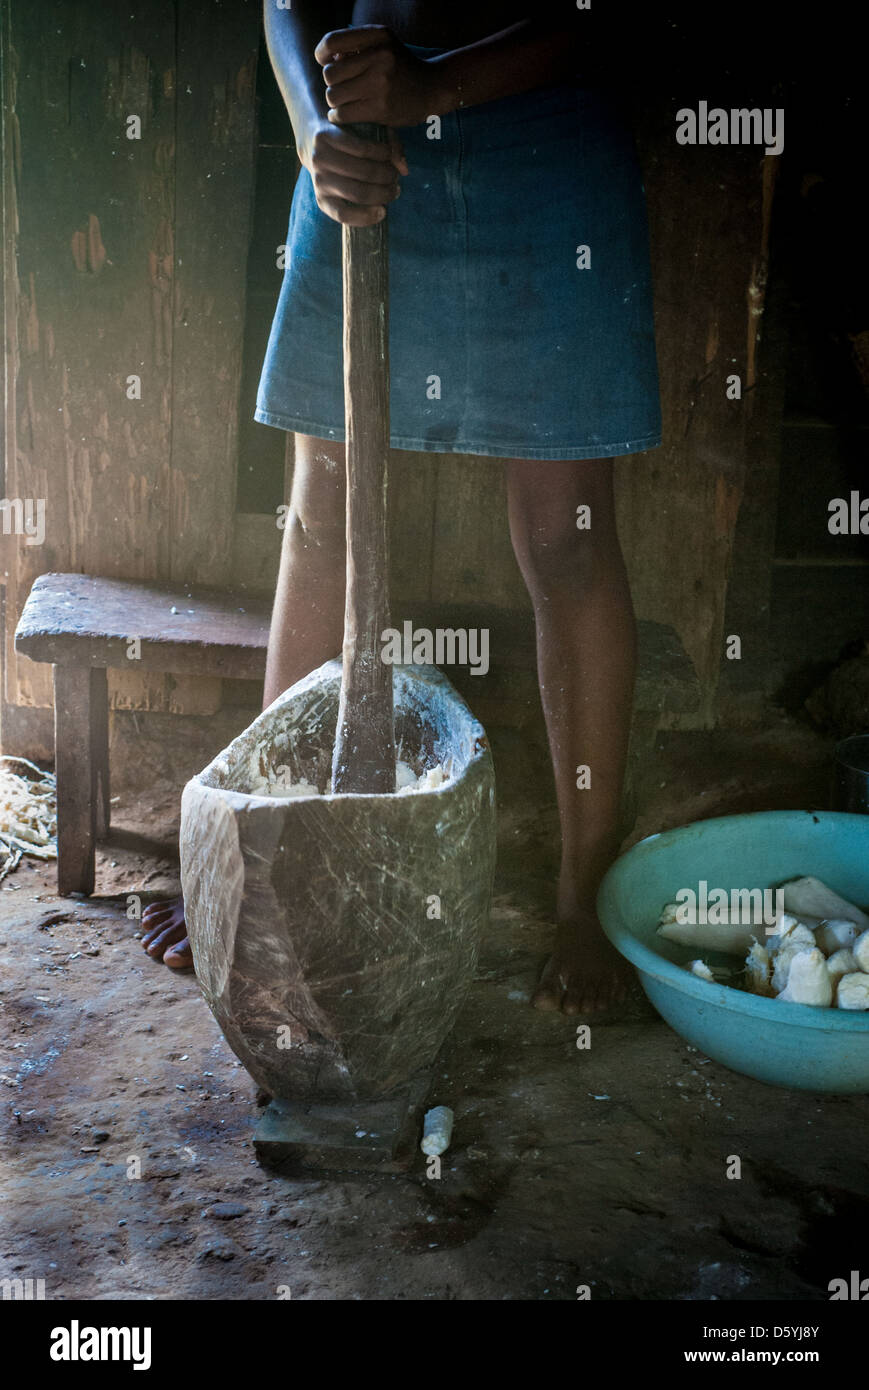 Pounding cassava to make flour in Cameroon Africa - Stock Image